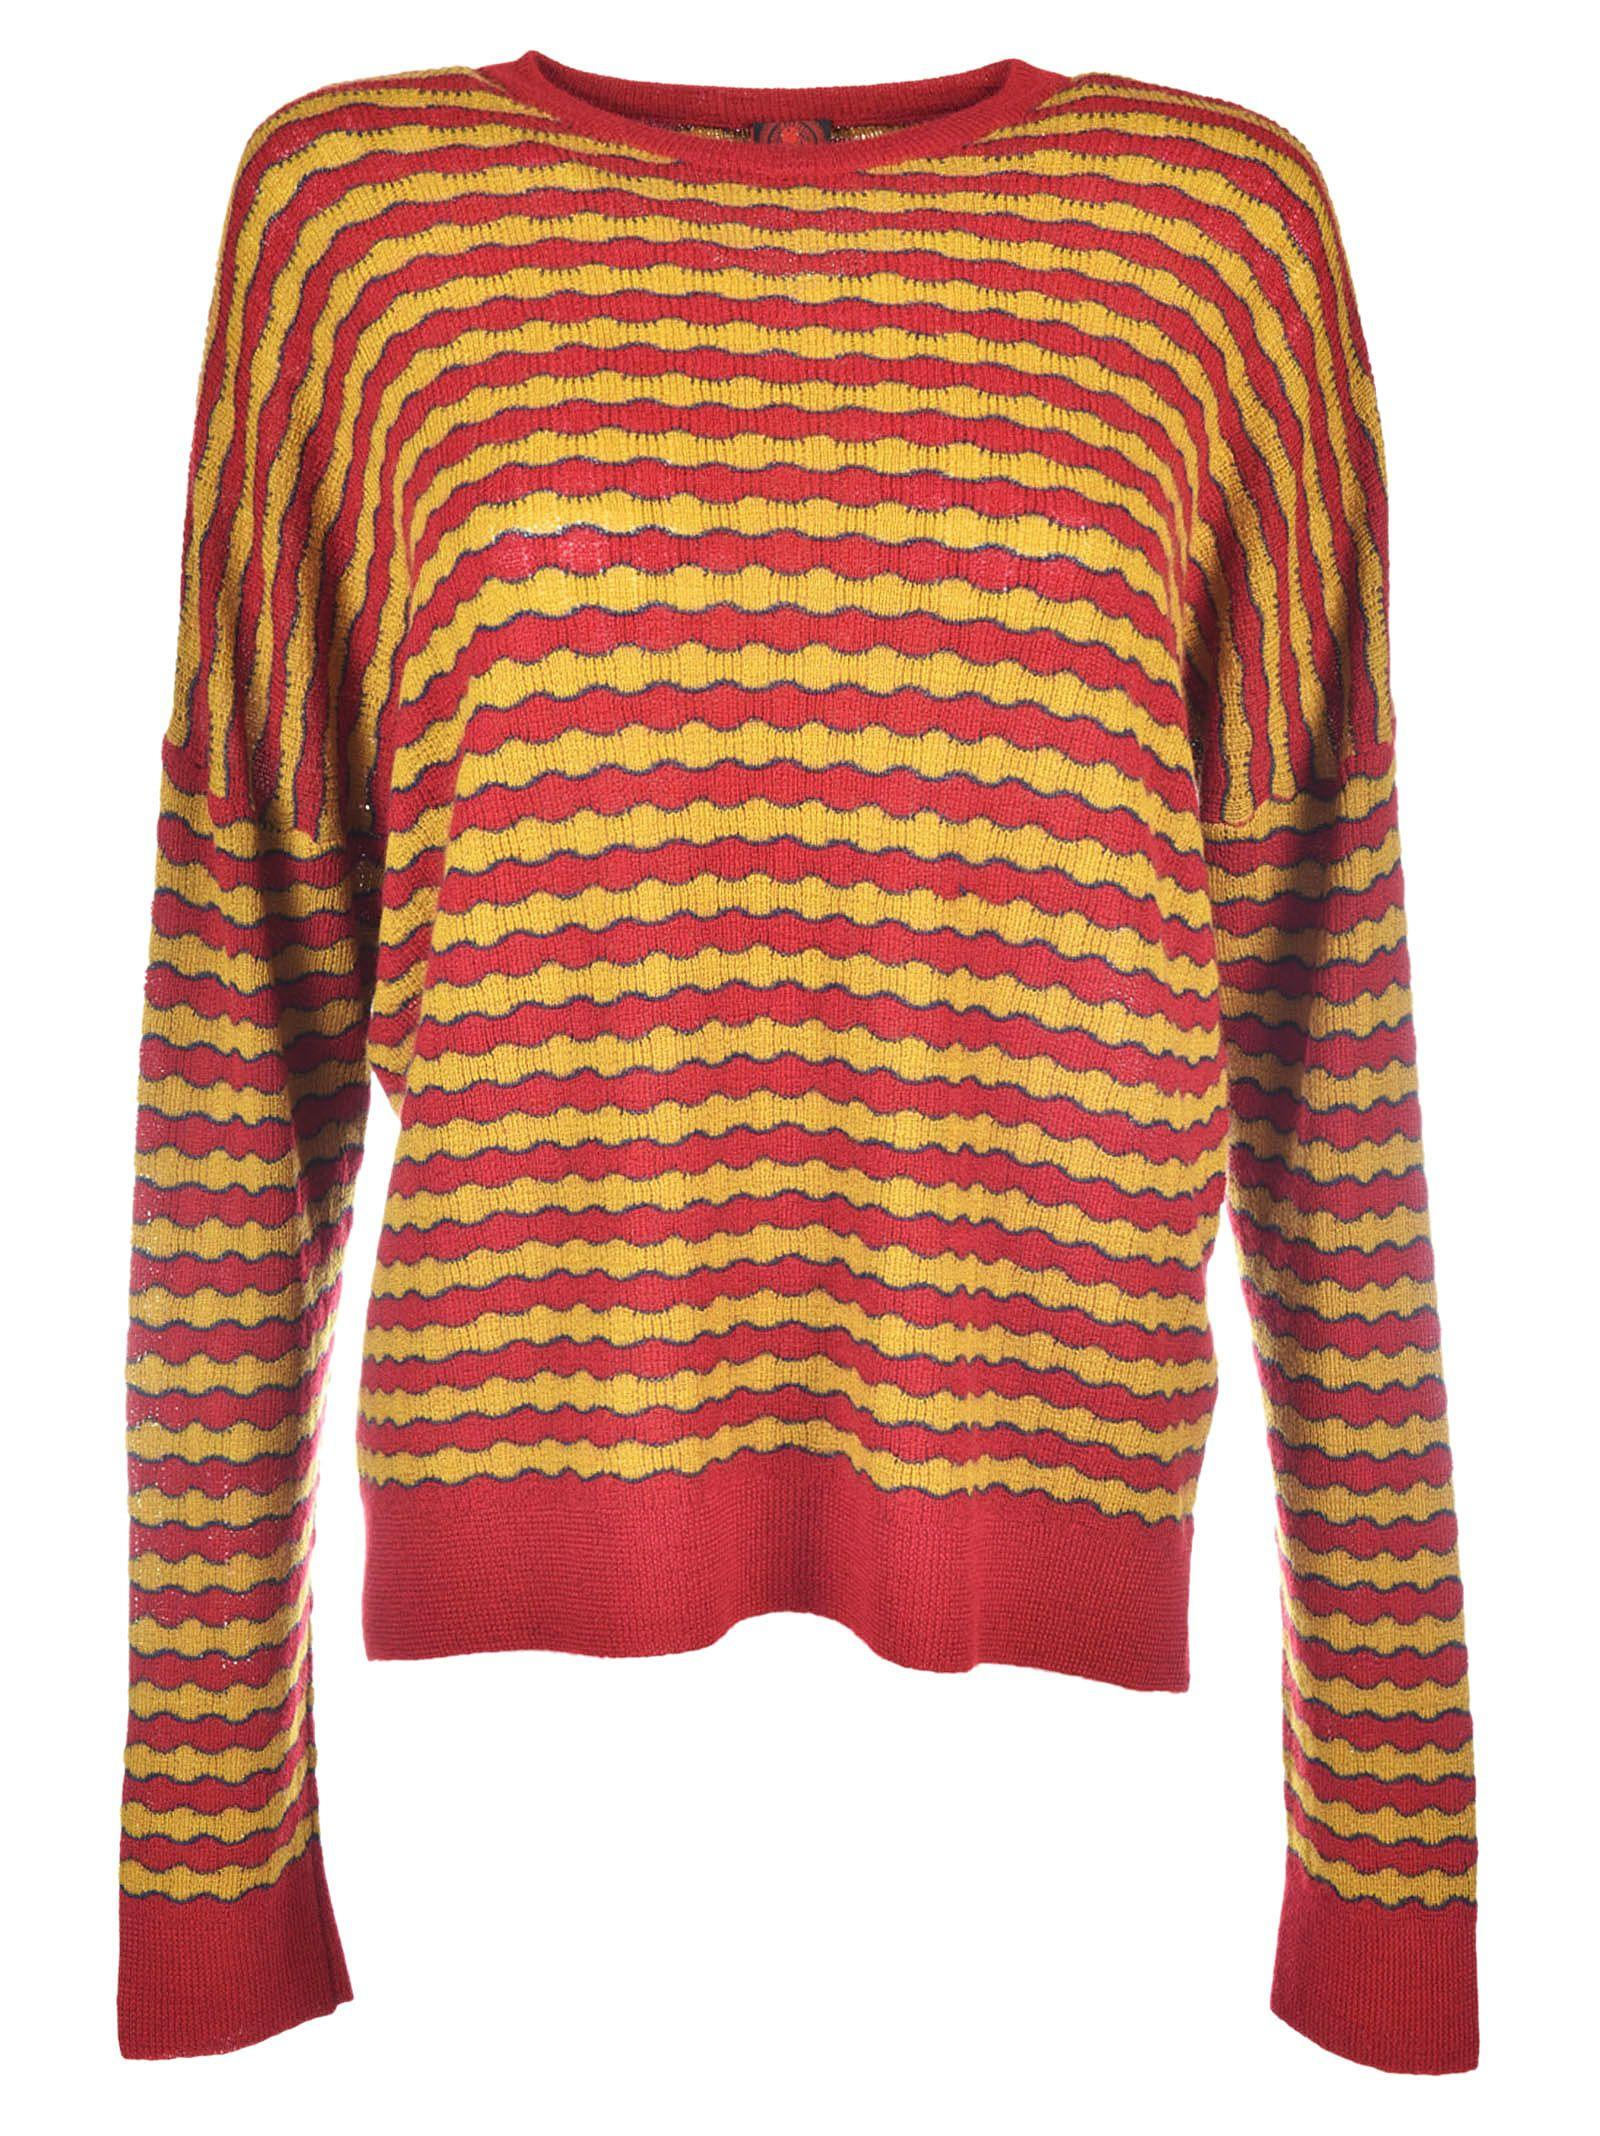 Yellow Sweater Sweater In Yellow Cashmere Red Cashmere In Red 3TJF1cKl